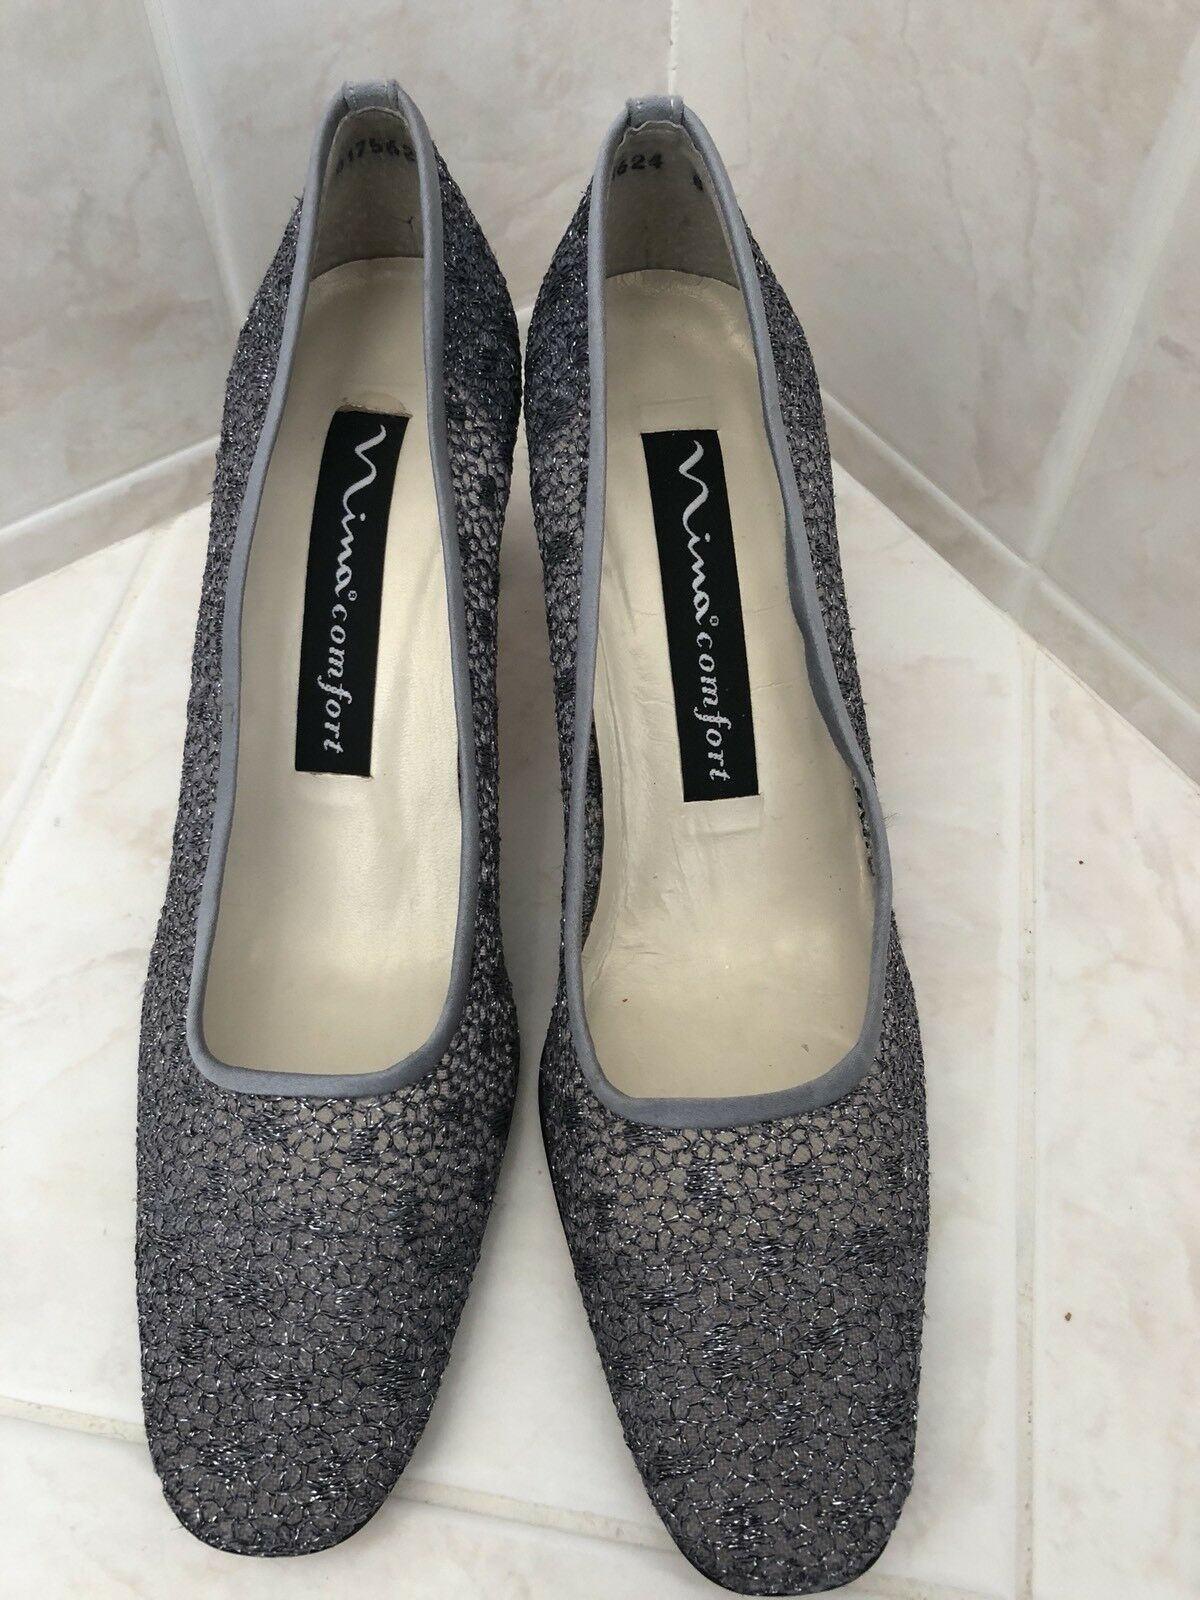 Nina Comfort Ladies Closed Silver Pumps, 8 Med. Dark Silver Closed Leather Sole, 2.5